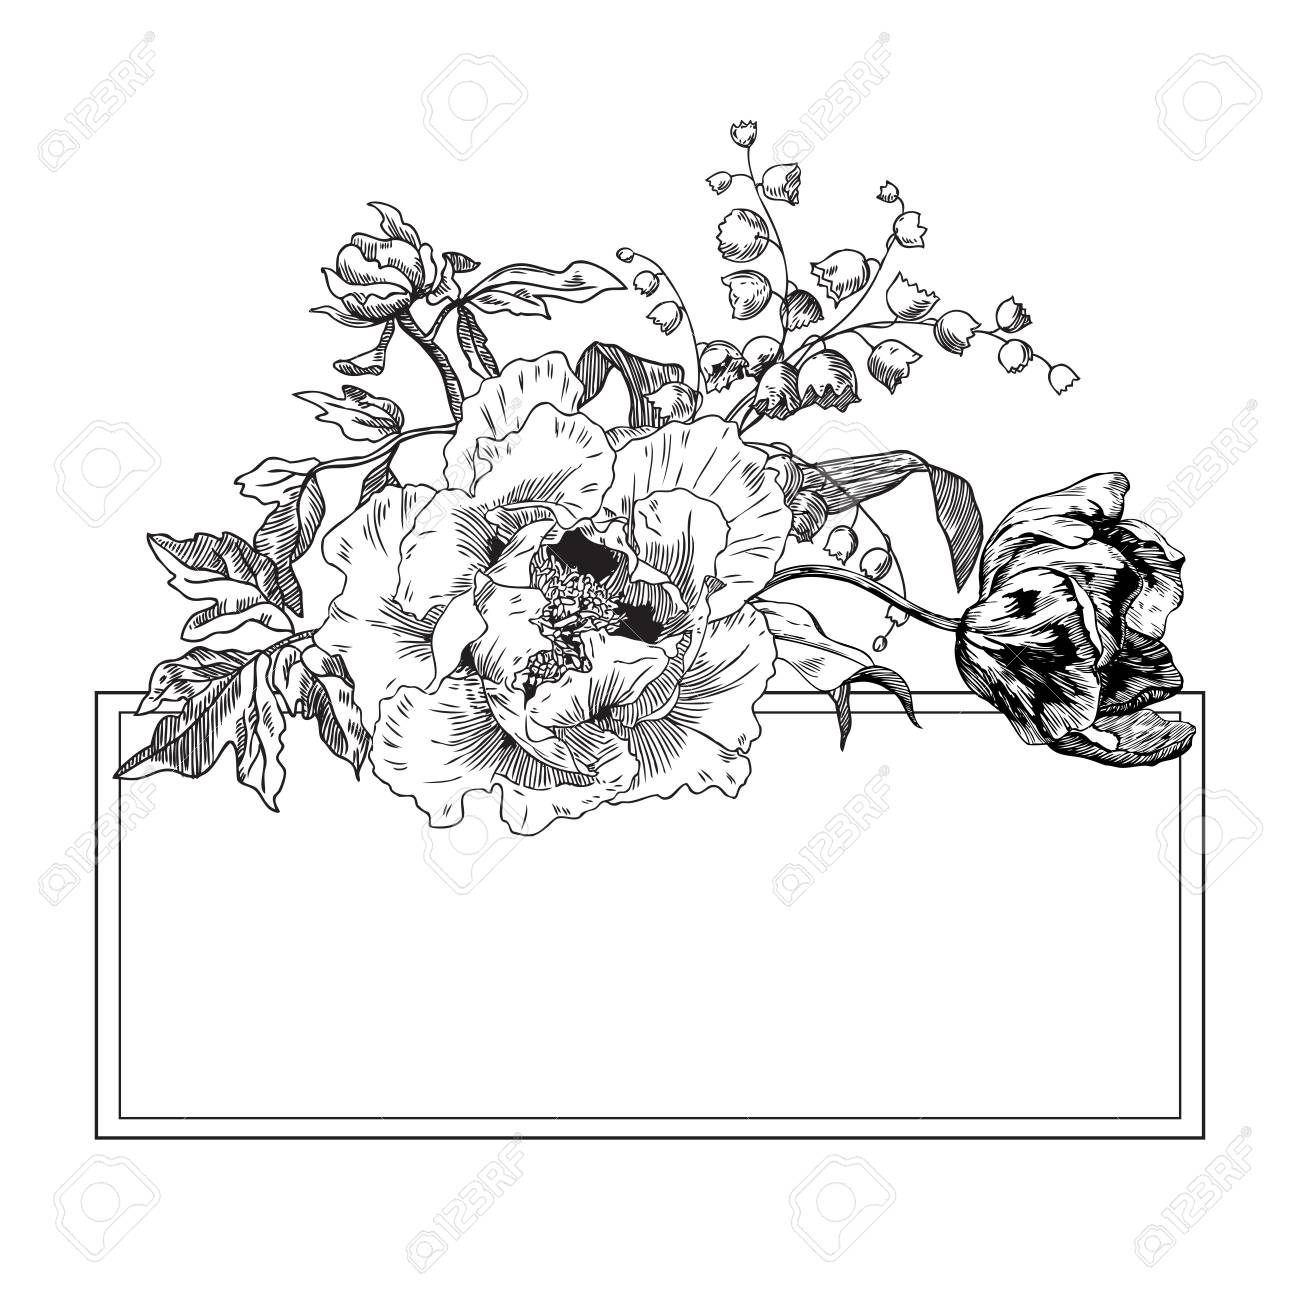 Peonies Roses Botanical Floral Hand Drawn Pen and Ink Illustration